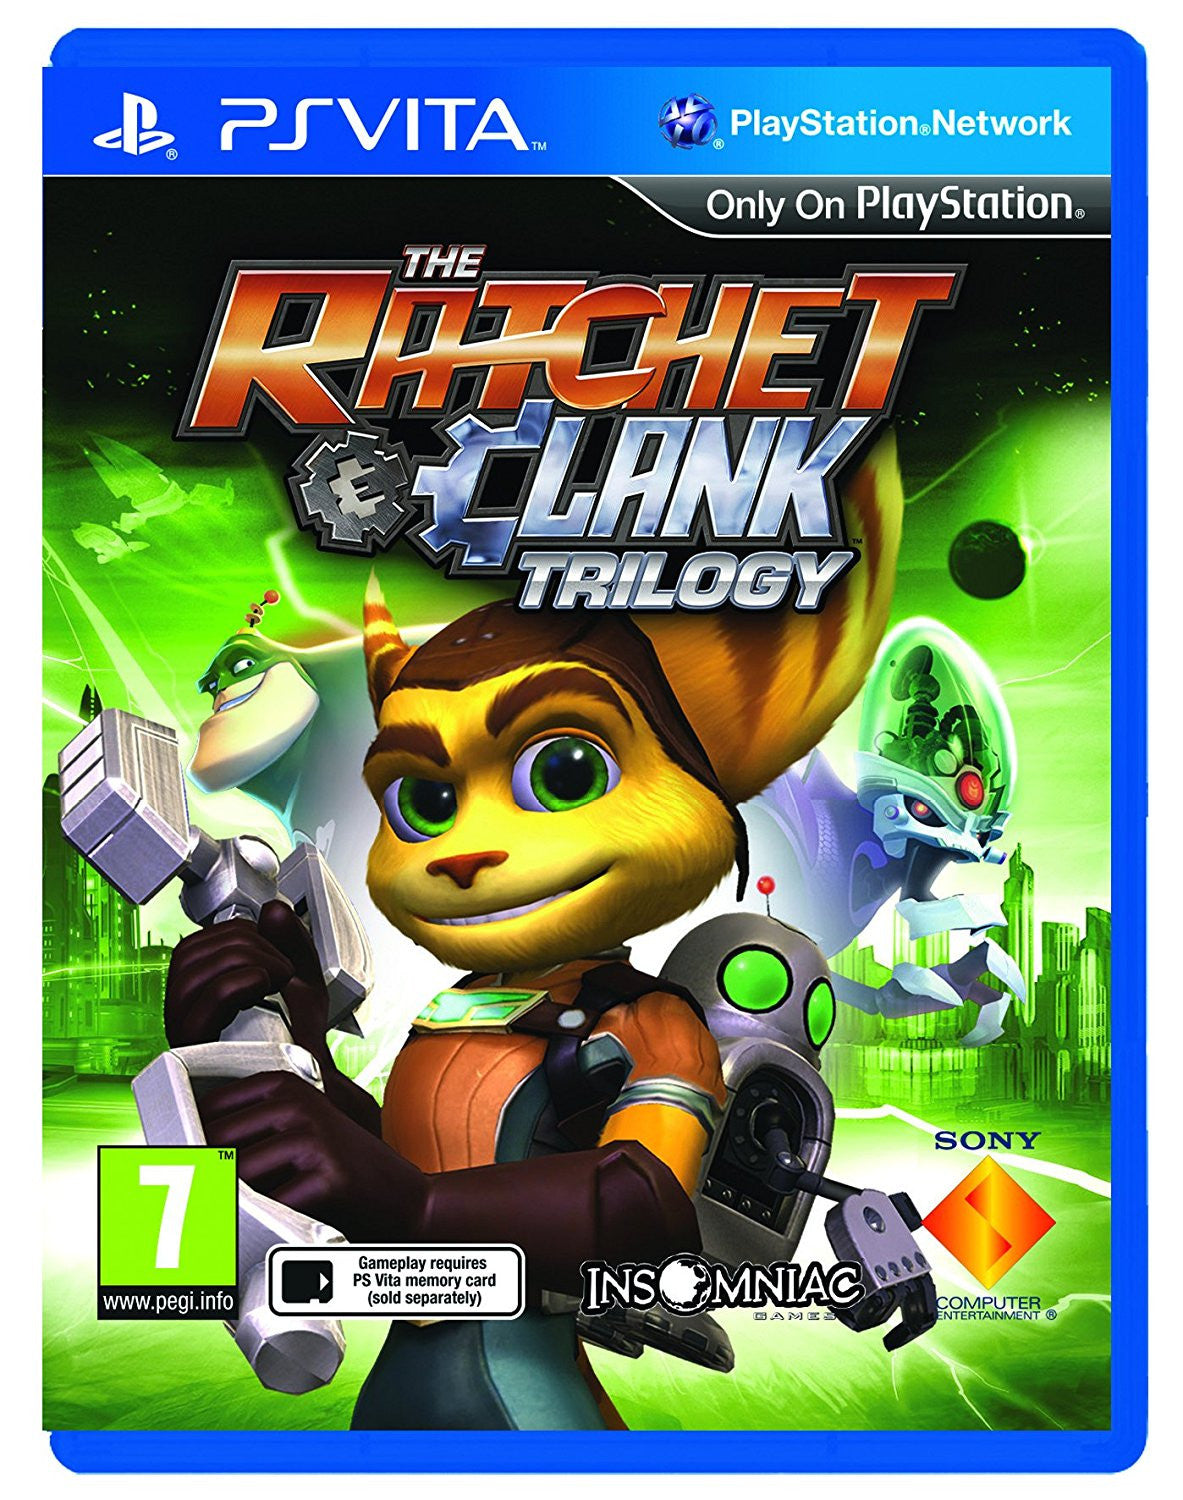 Ratchet and Clank Trilogy (Playstation Vita) - Video Games by Sony The Chelsea Gamer